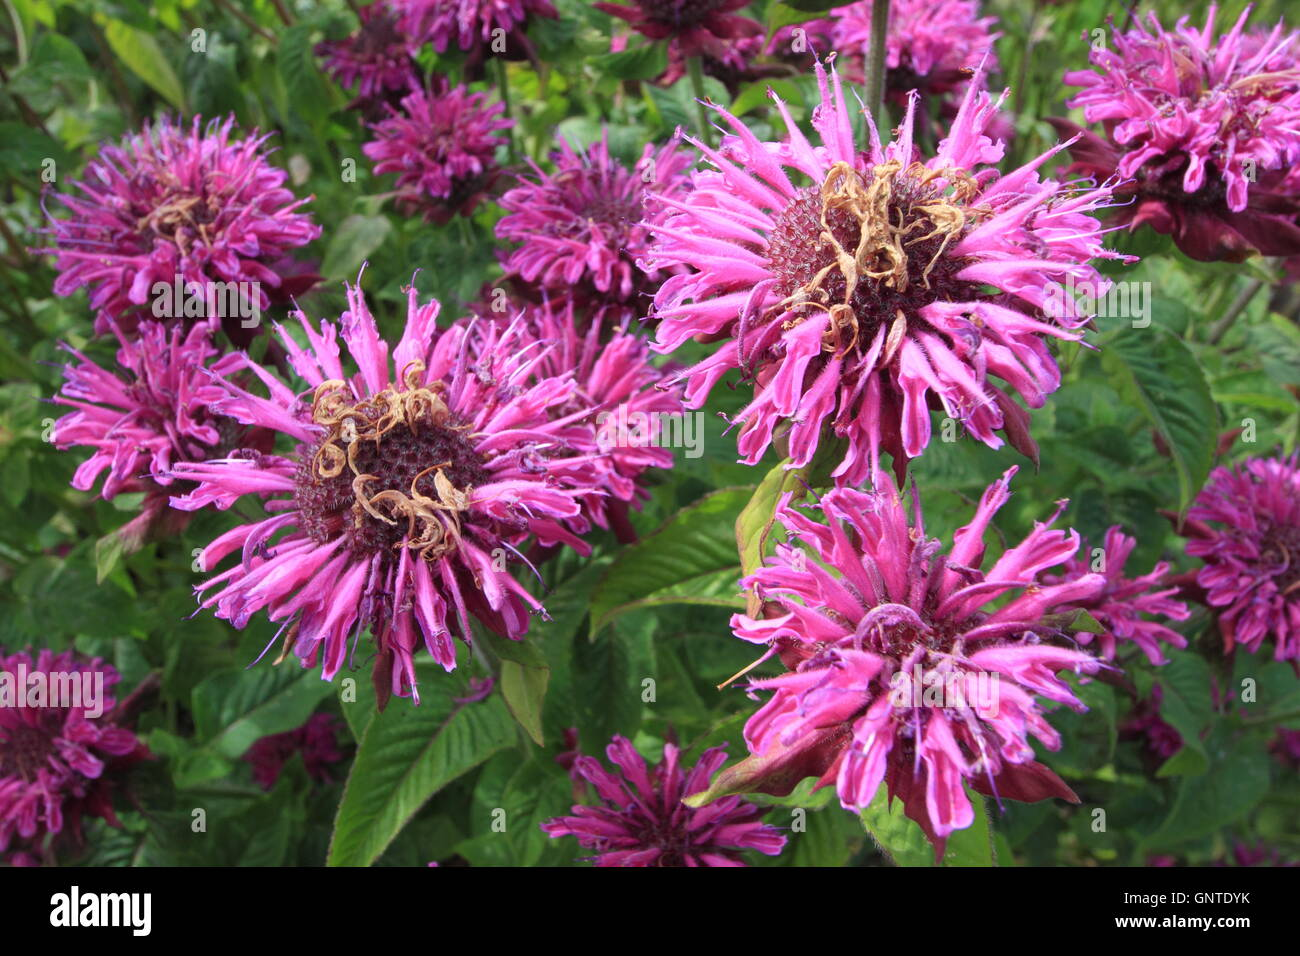 A clump of purple bergamot (monarda fistulosa) flowers in the herbaceous border of an English garden in August - Stock Image